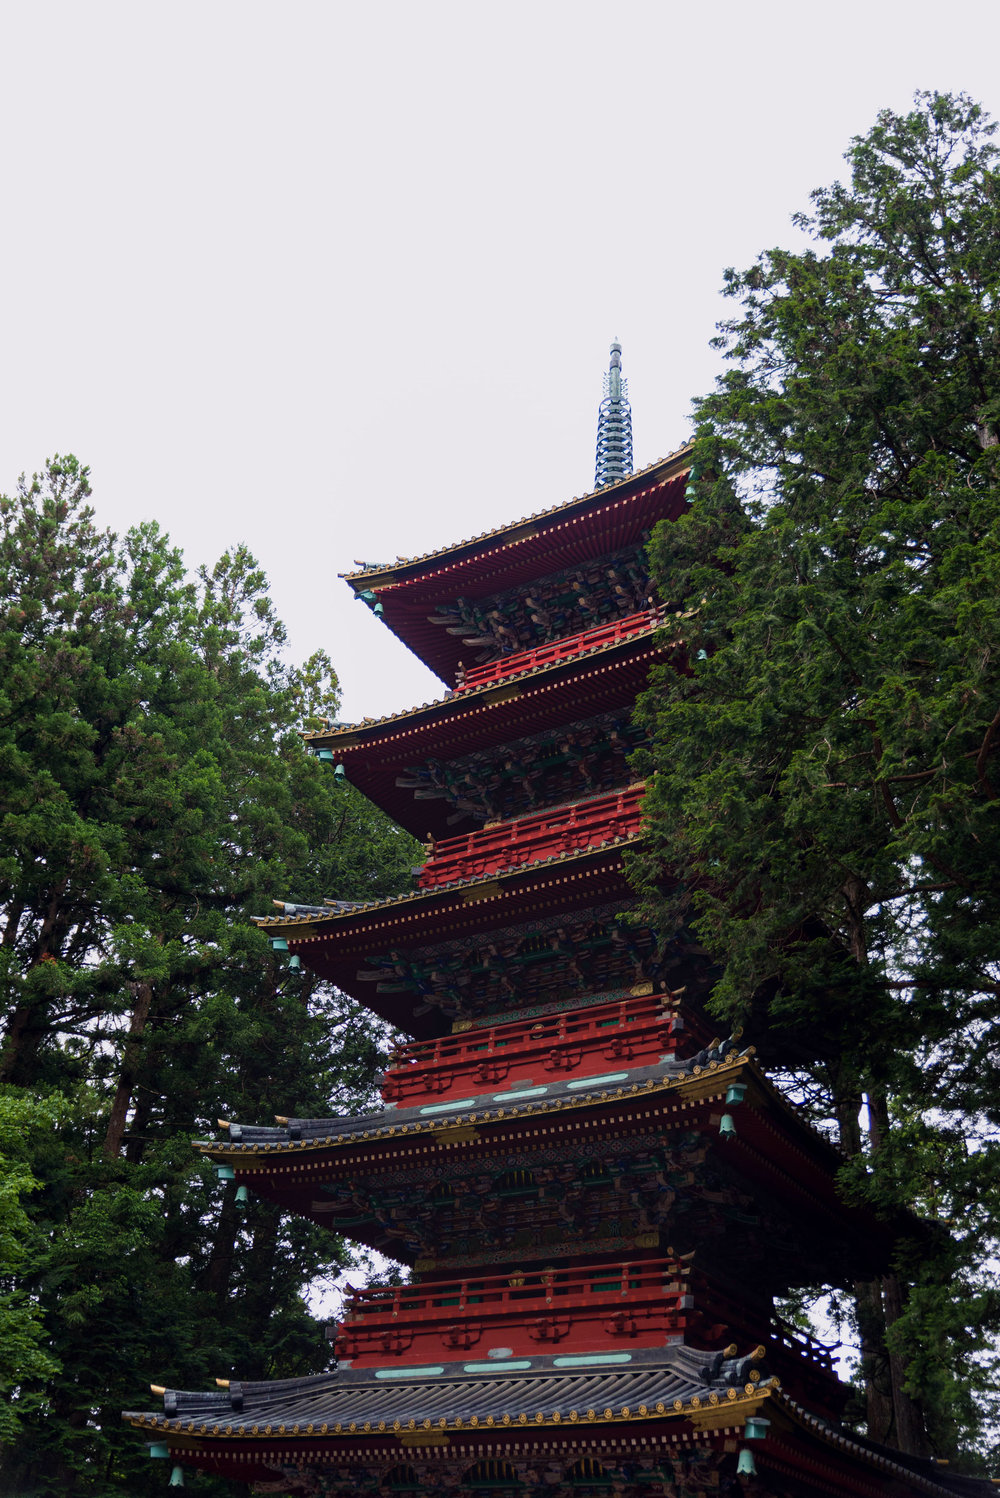 Five-story pagoda at Nikkō Tōshō-gū